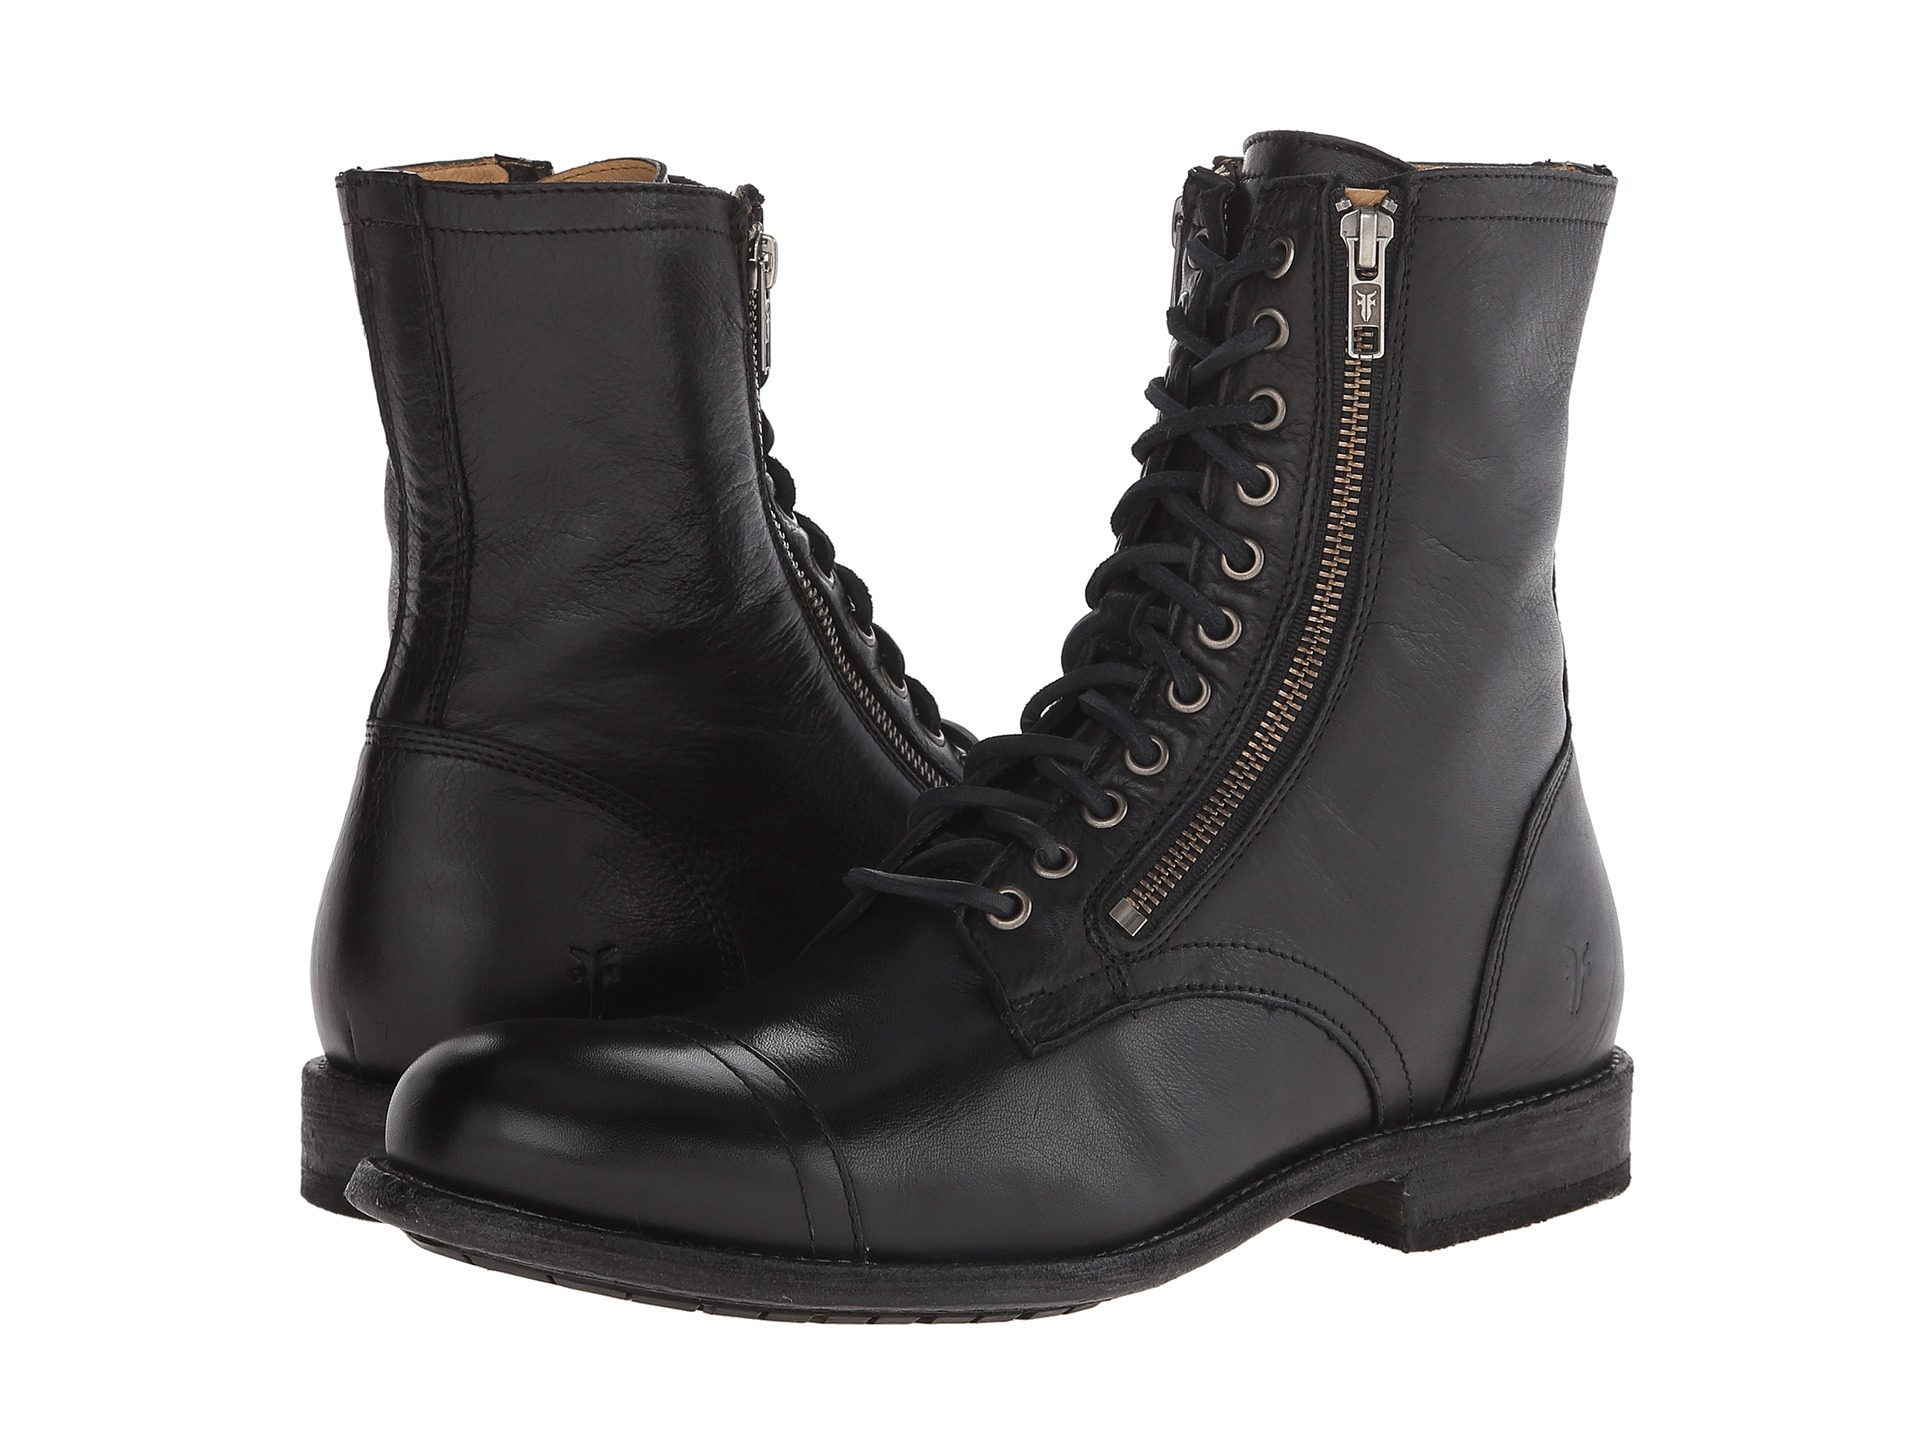 Frye, Boots, Men   Shipped Free at Zappos